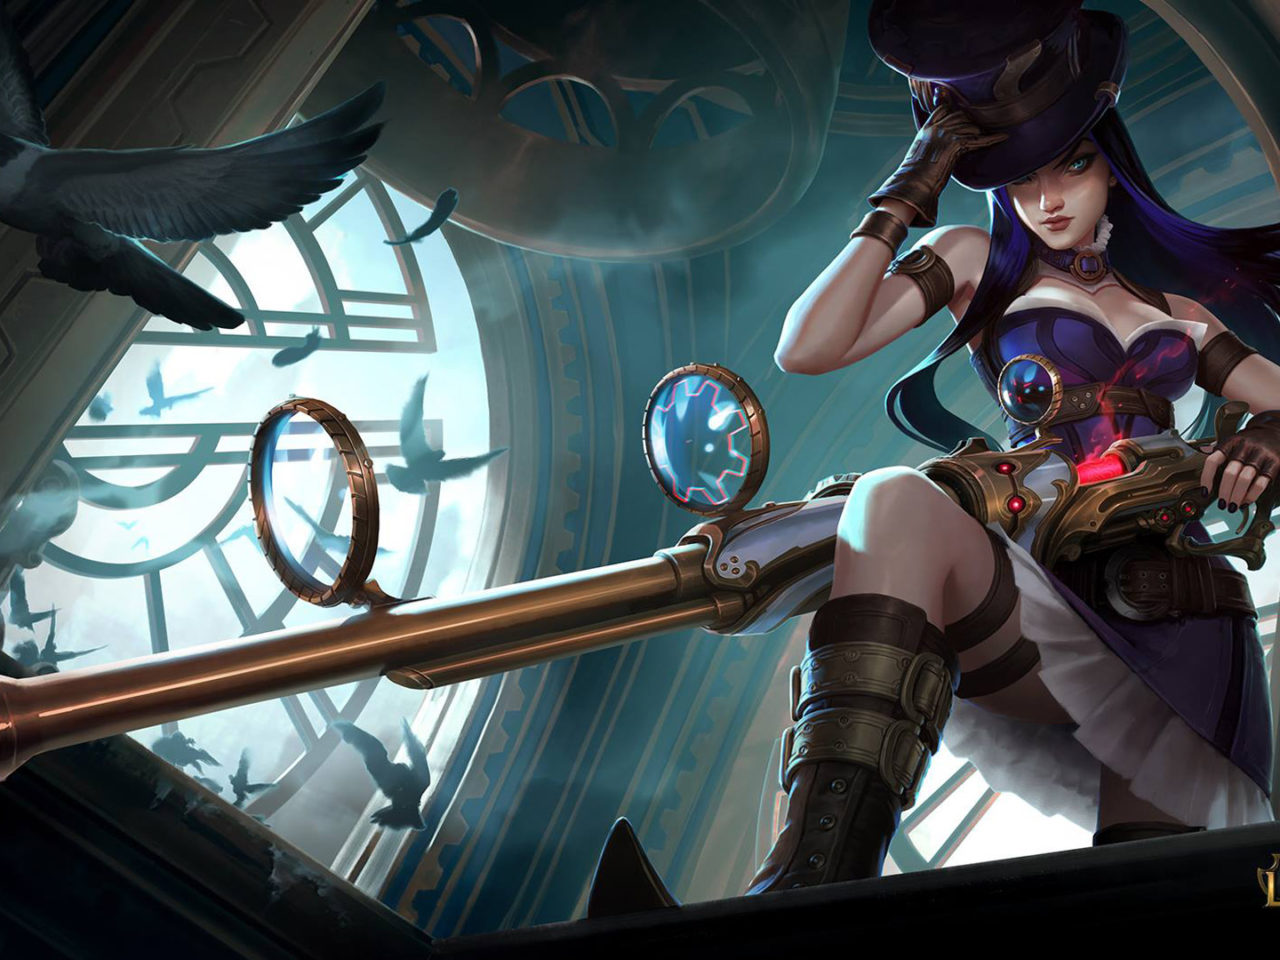 Dragon Skin Girl Wallpaper League Of Legends Caitlyn The Sheriff Of Piltover Video